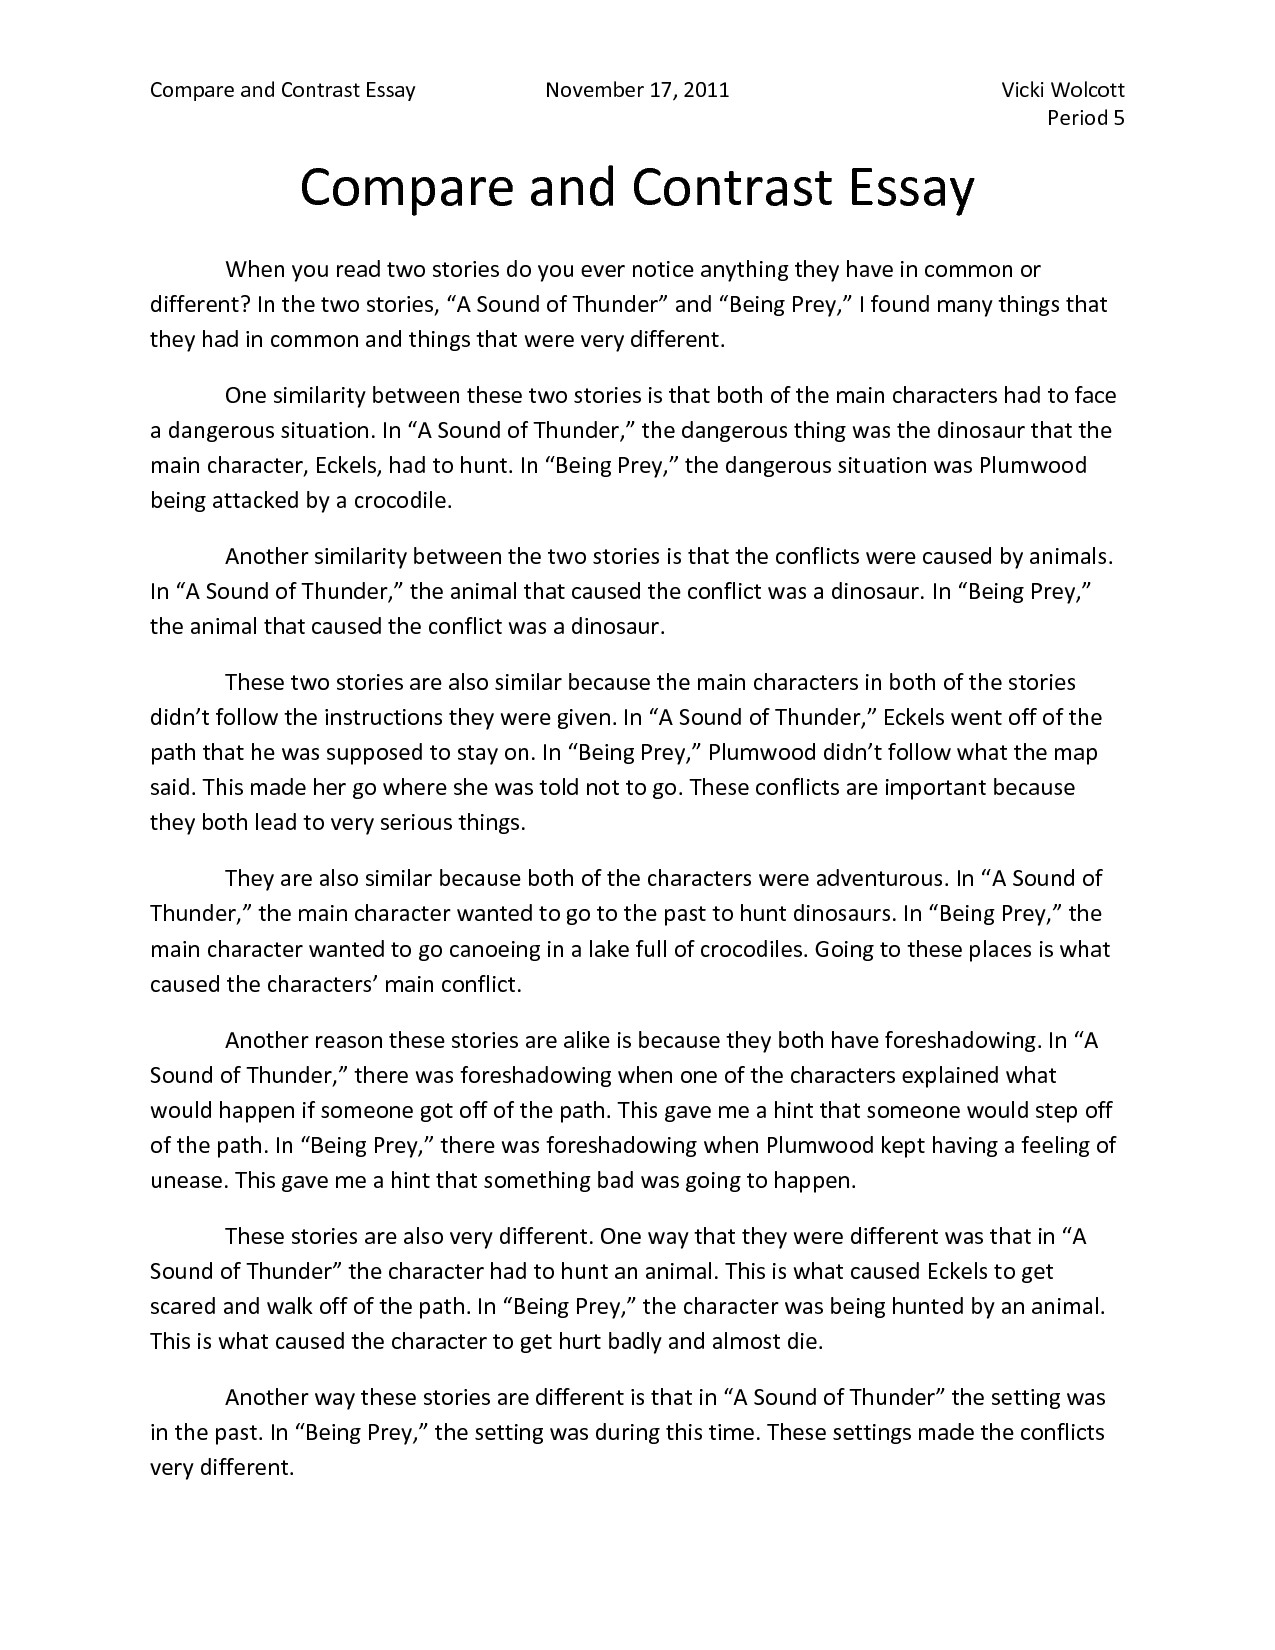 006 Essay Example Compare Contrast An Of And Comparison Ideas Fascinating Topics Graphic Organizer Julius Caesar Answers High School Full